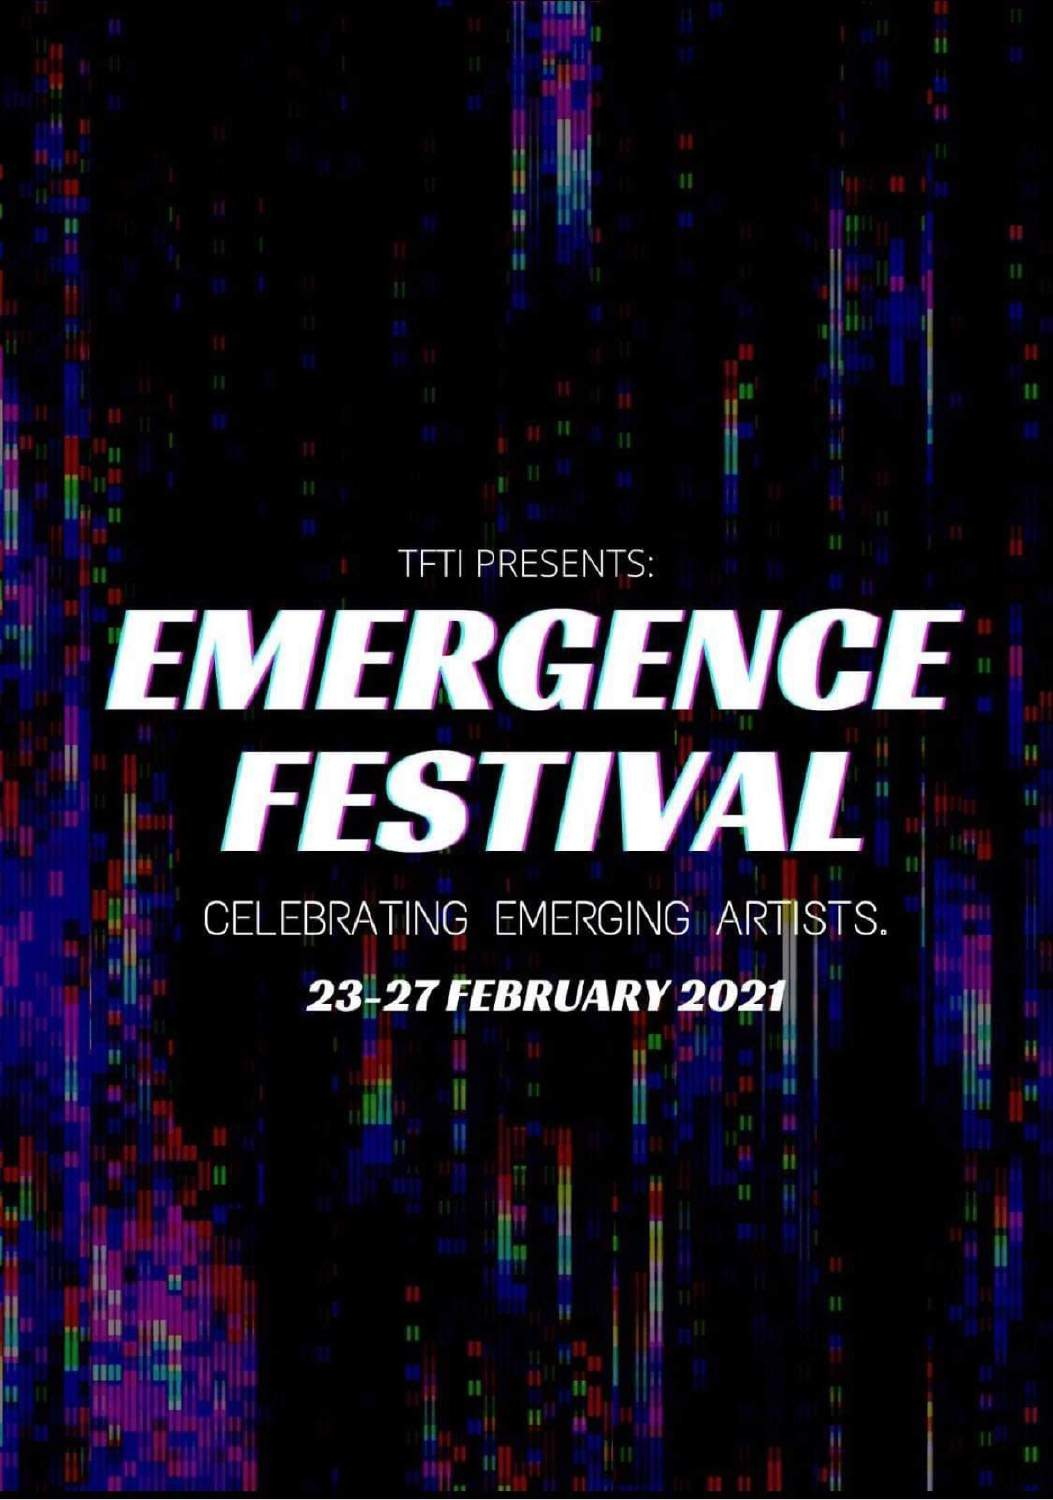 Celebrating emerging talent in difficult times